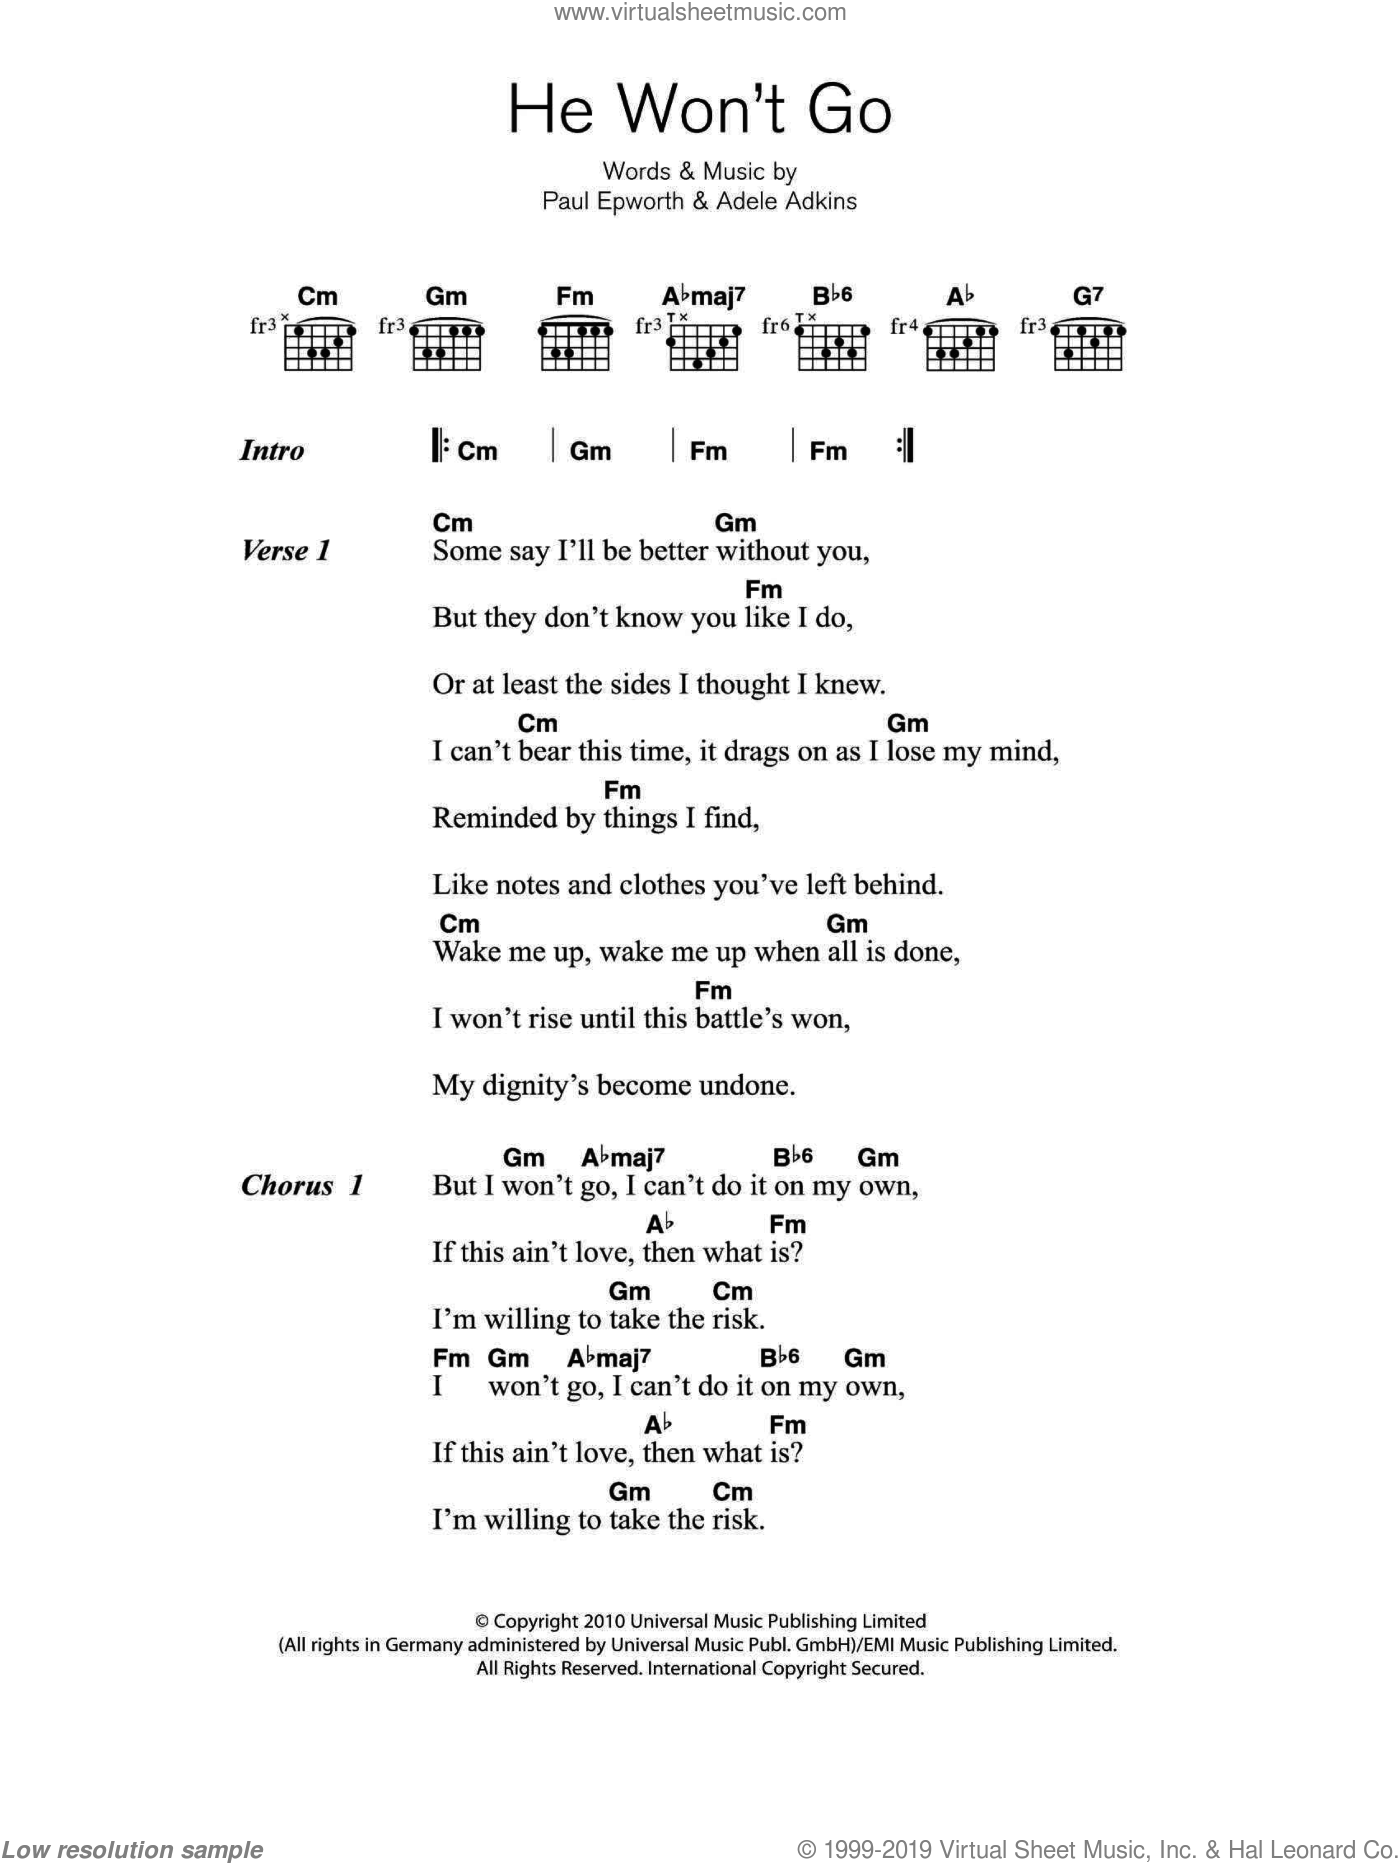 He Won't Go sheet music for guitar (chords) by Adele, Adele Adkins and Paul Epworth, intermediate. Score Image Preview.